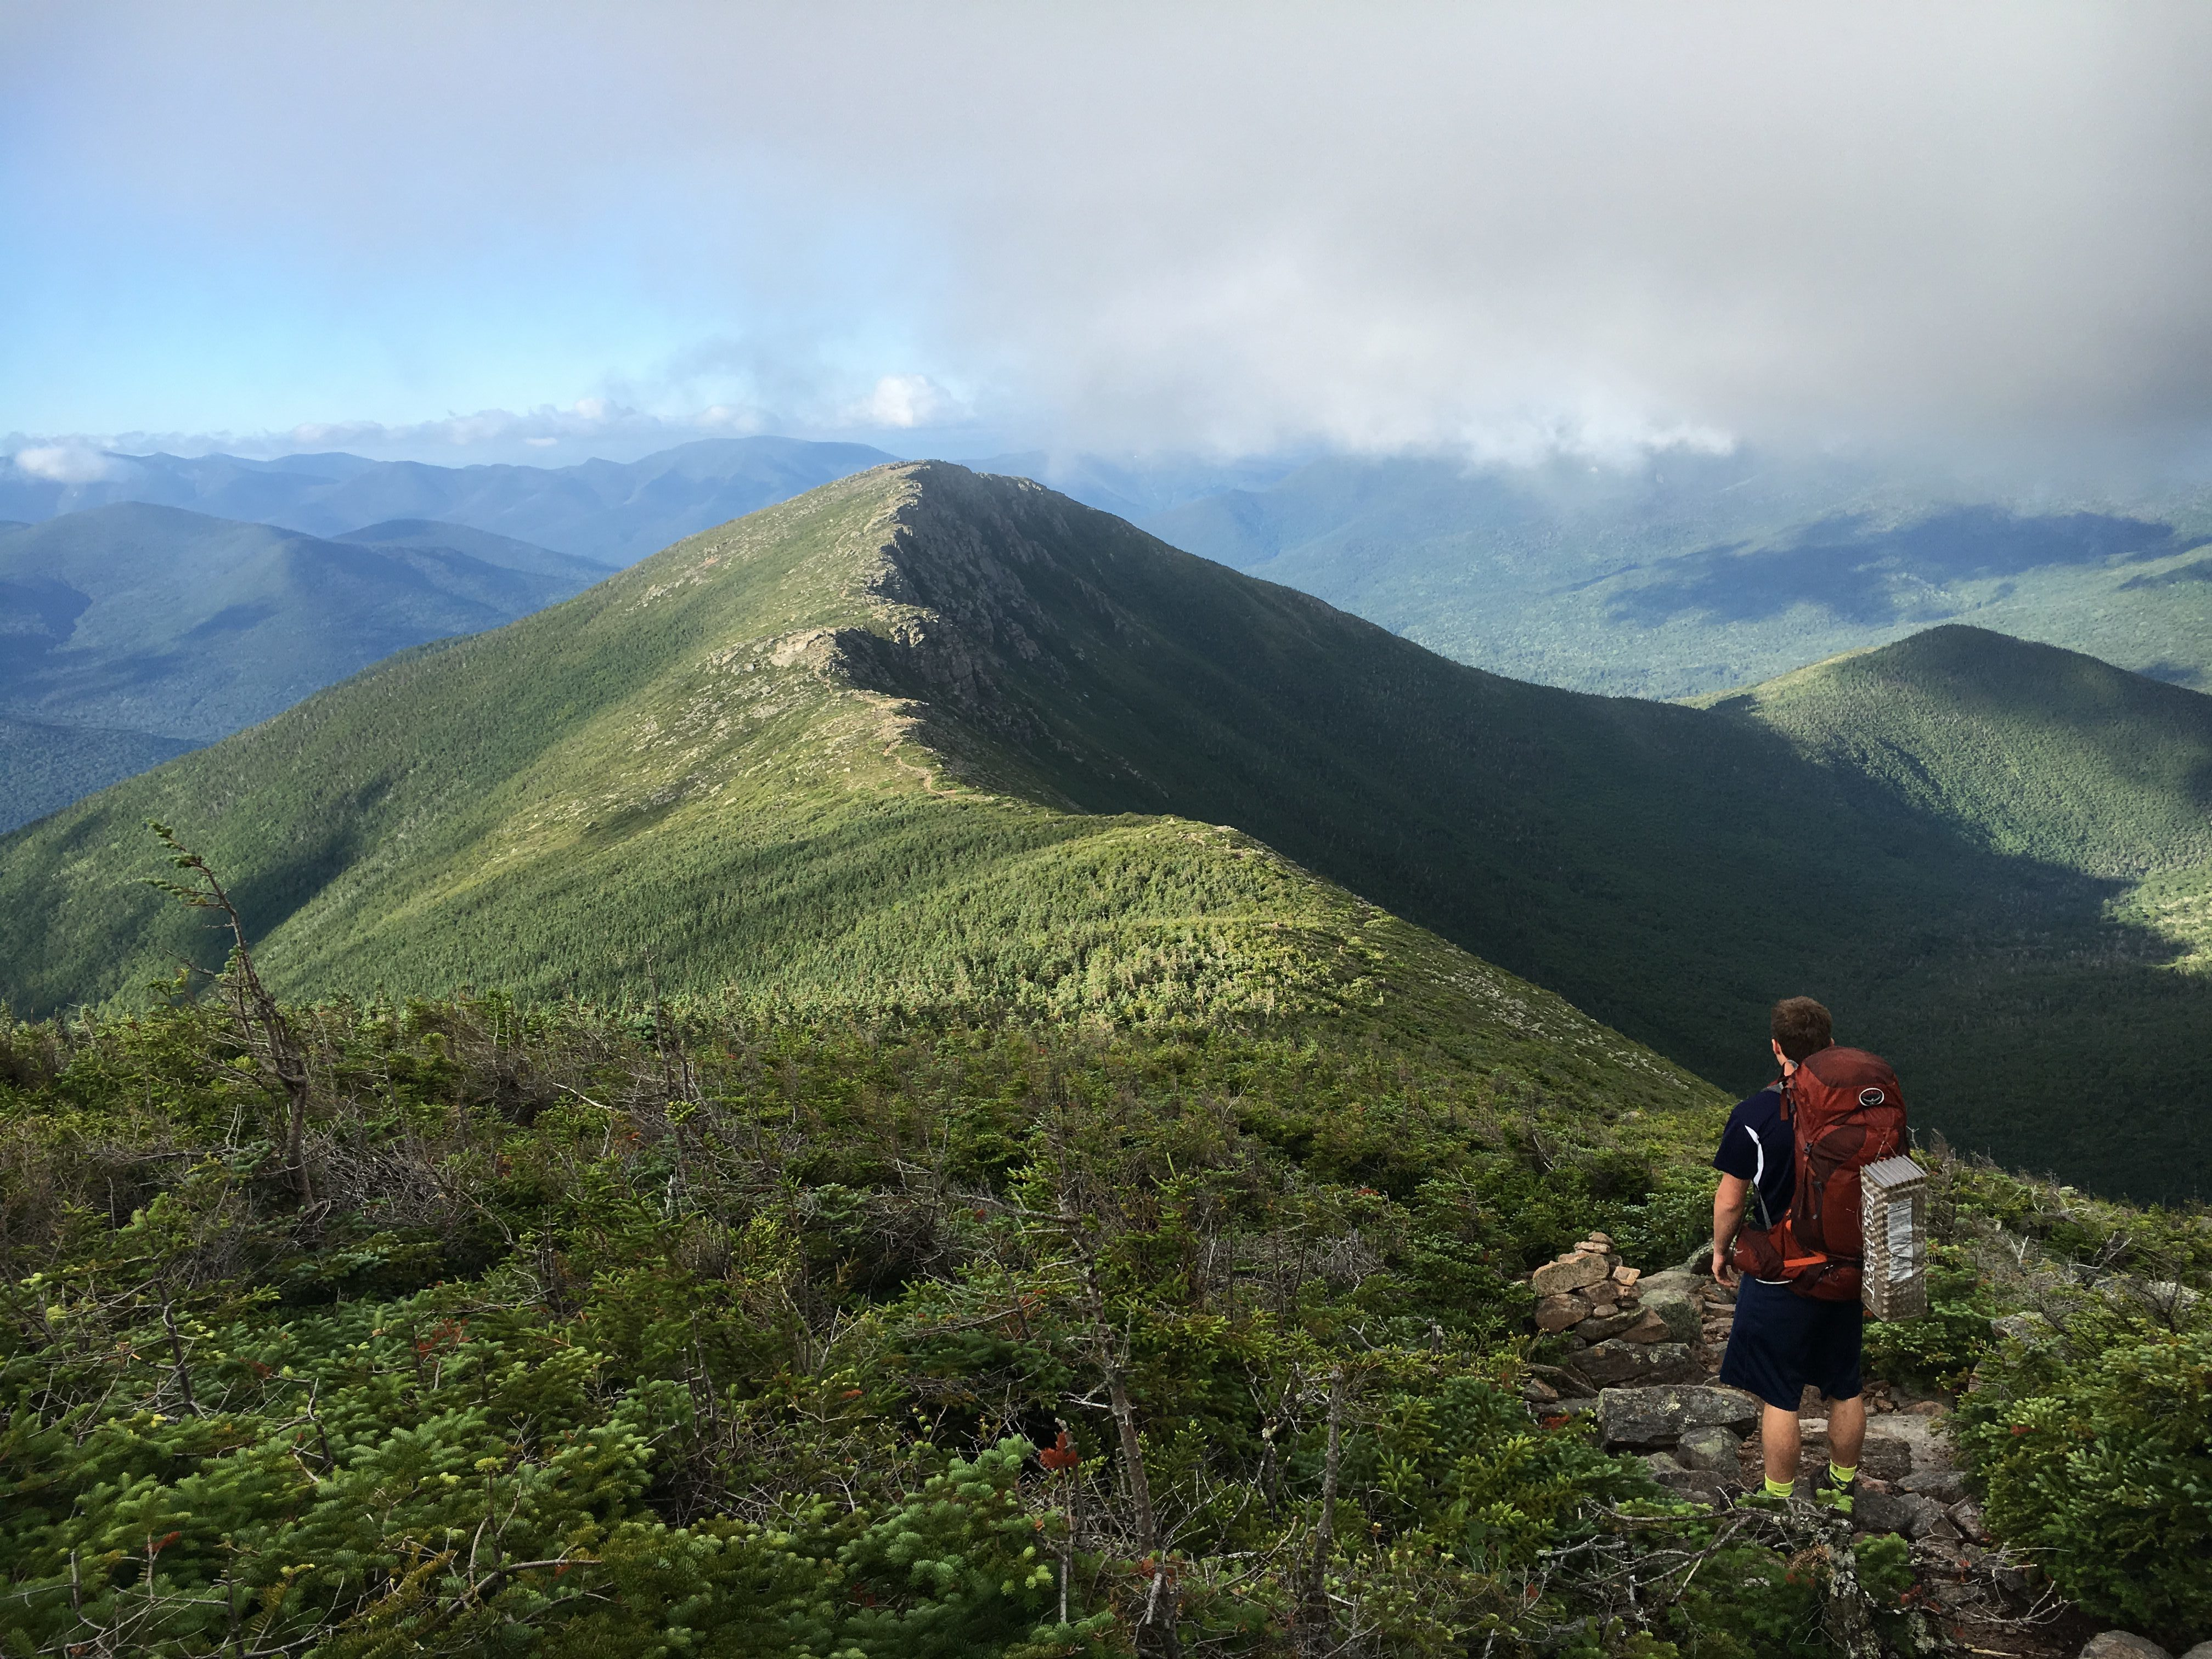 Bondcliff | Hiking Guide To NH's Best Viewpoint | Maps, Trails, Pics & More